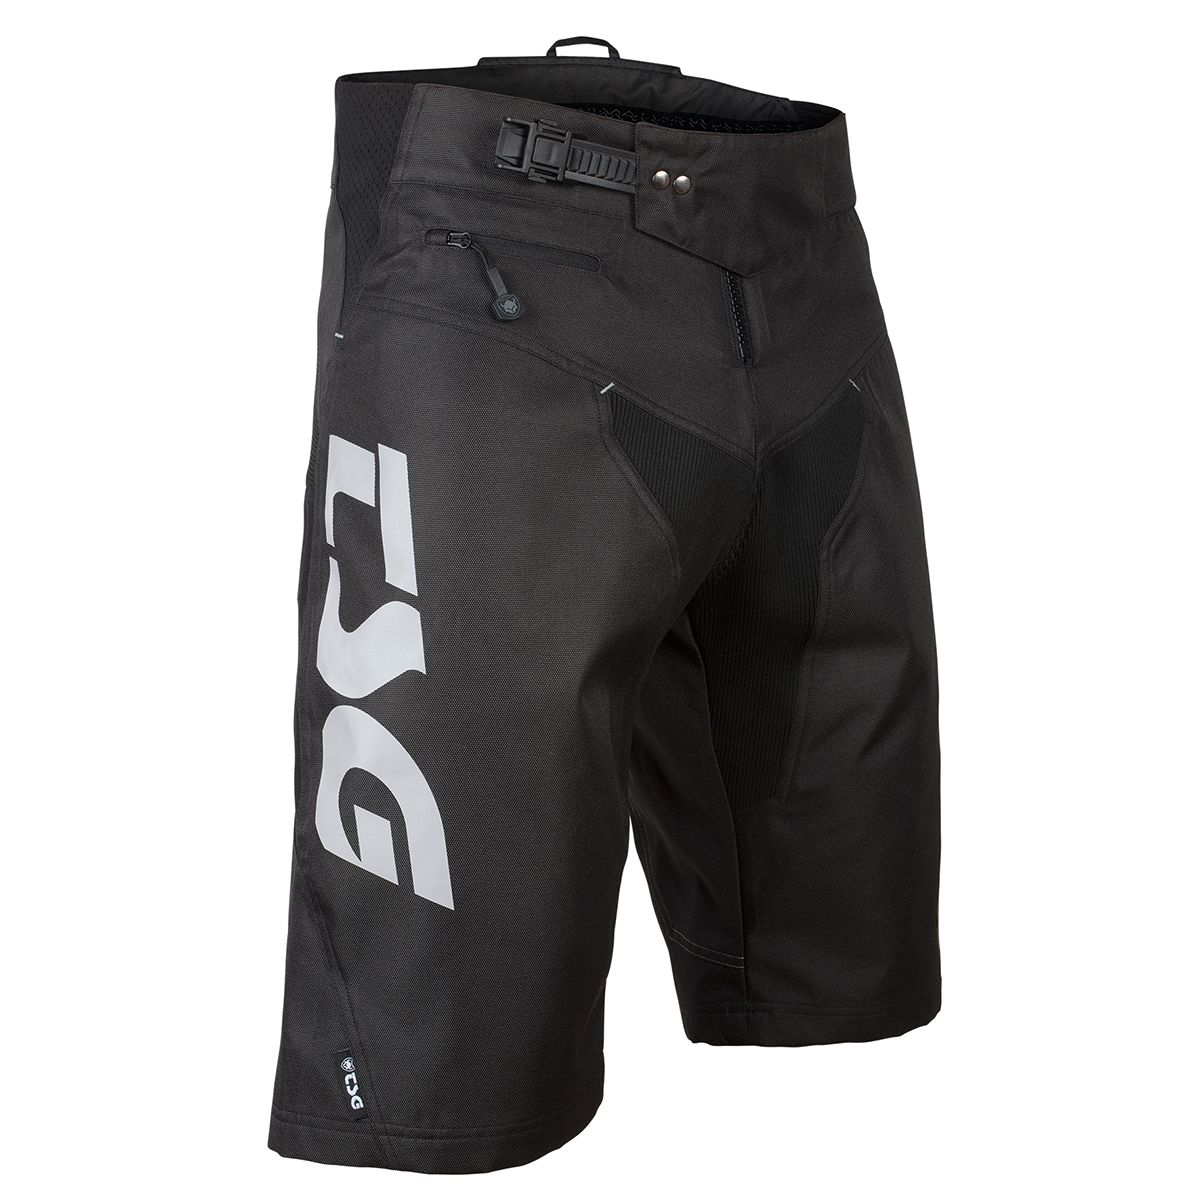 PLAIN BIKE SHORTS